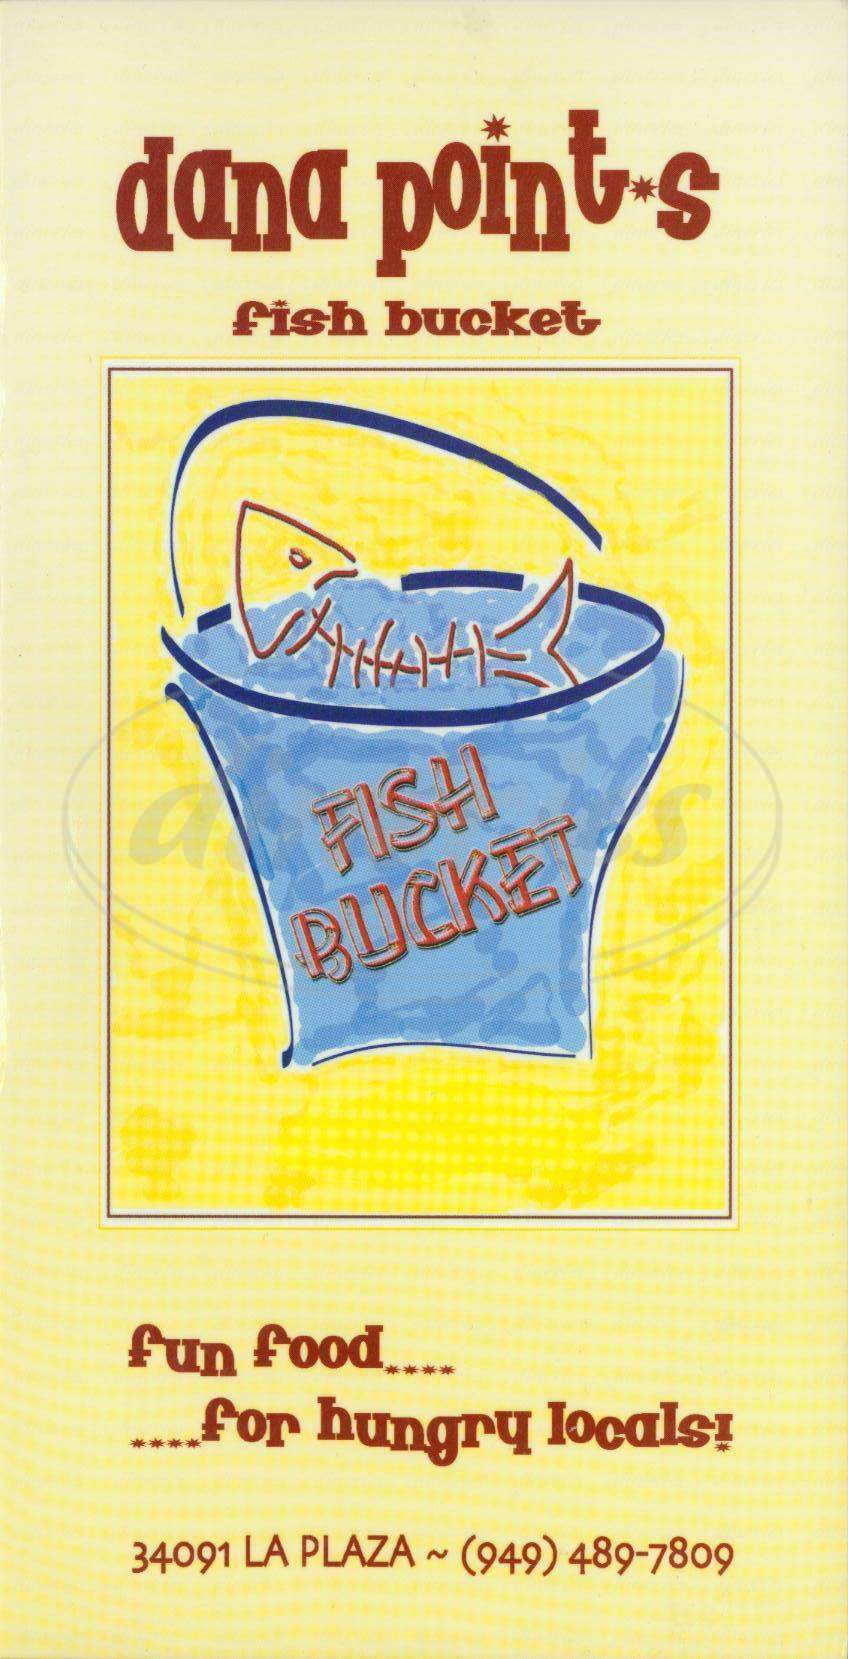 menu for The Fish Bucket